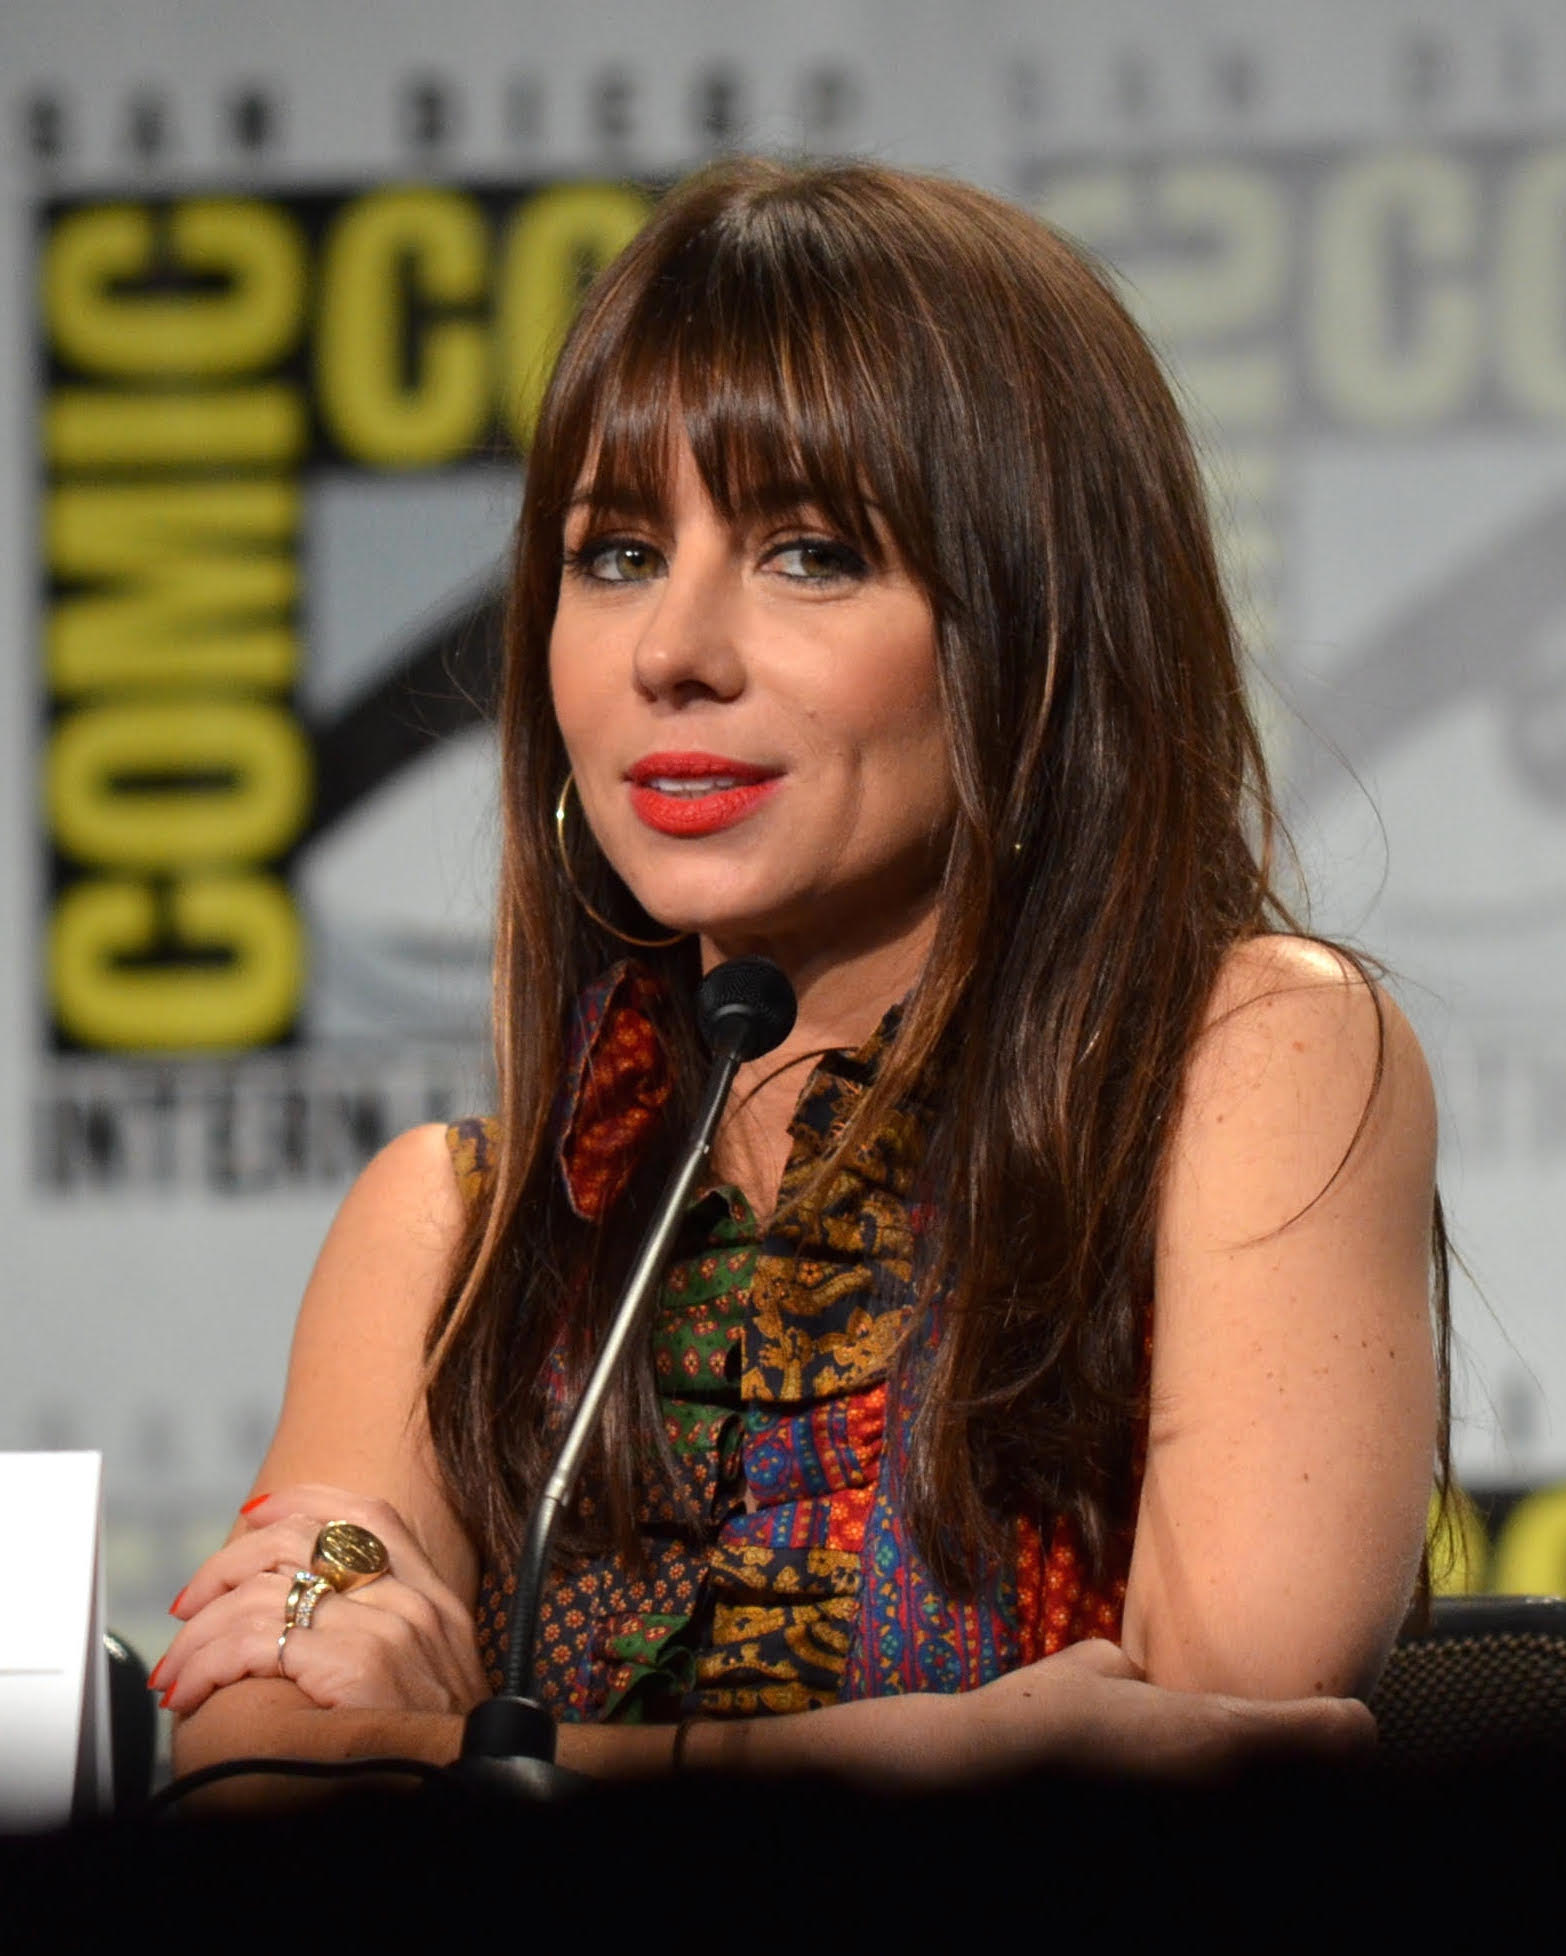 Natasha Leggero will be joined by her husband Moshe Kasher for an evening of comedy at the Vic on 8/6.